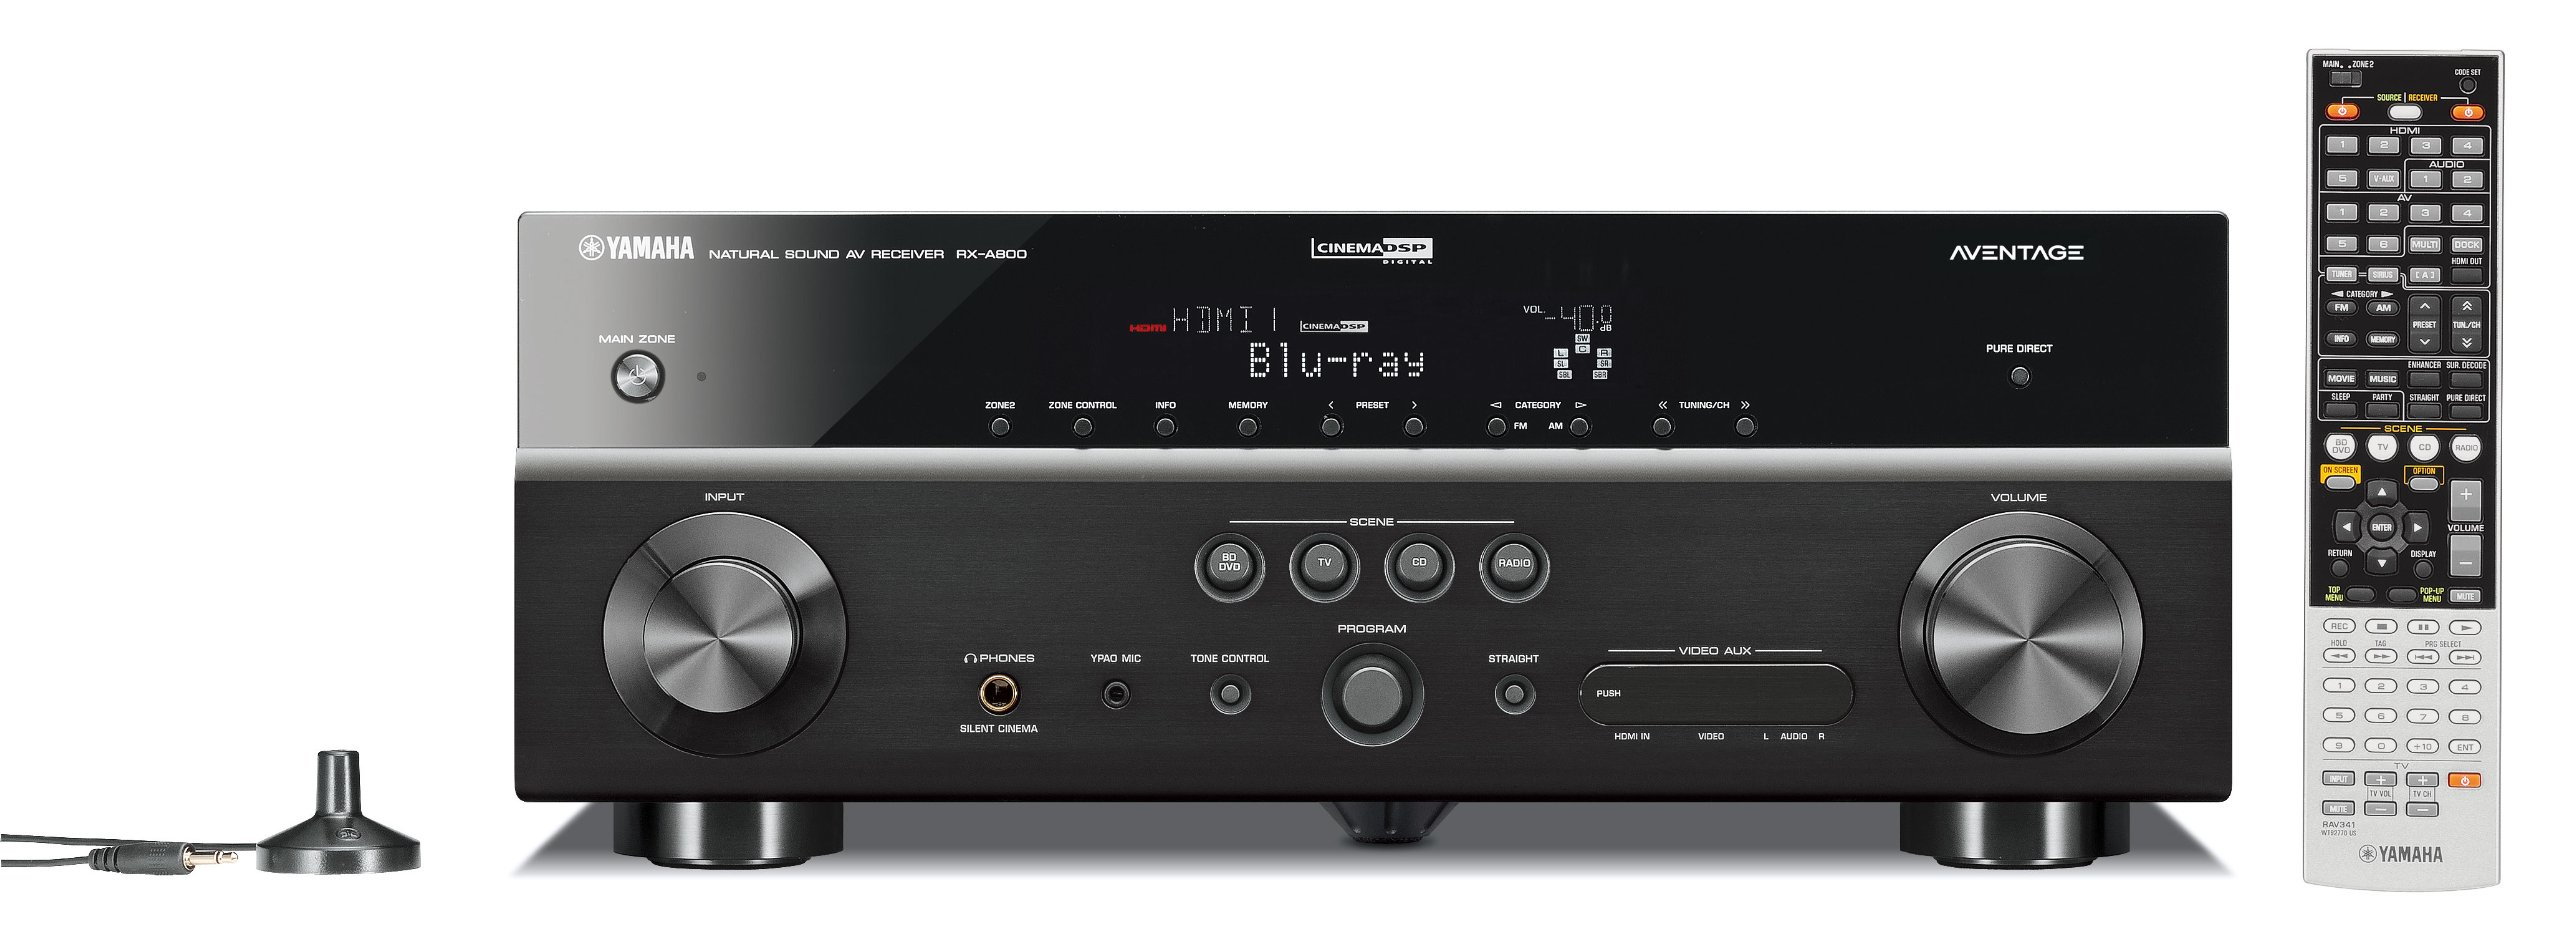 Yamaha RX-A800 7.1-Channel Audio/Video Receiver (OLD VERSION) (Discontinued by Manufacturer) by Yamaha